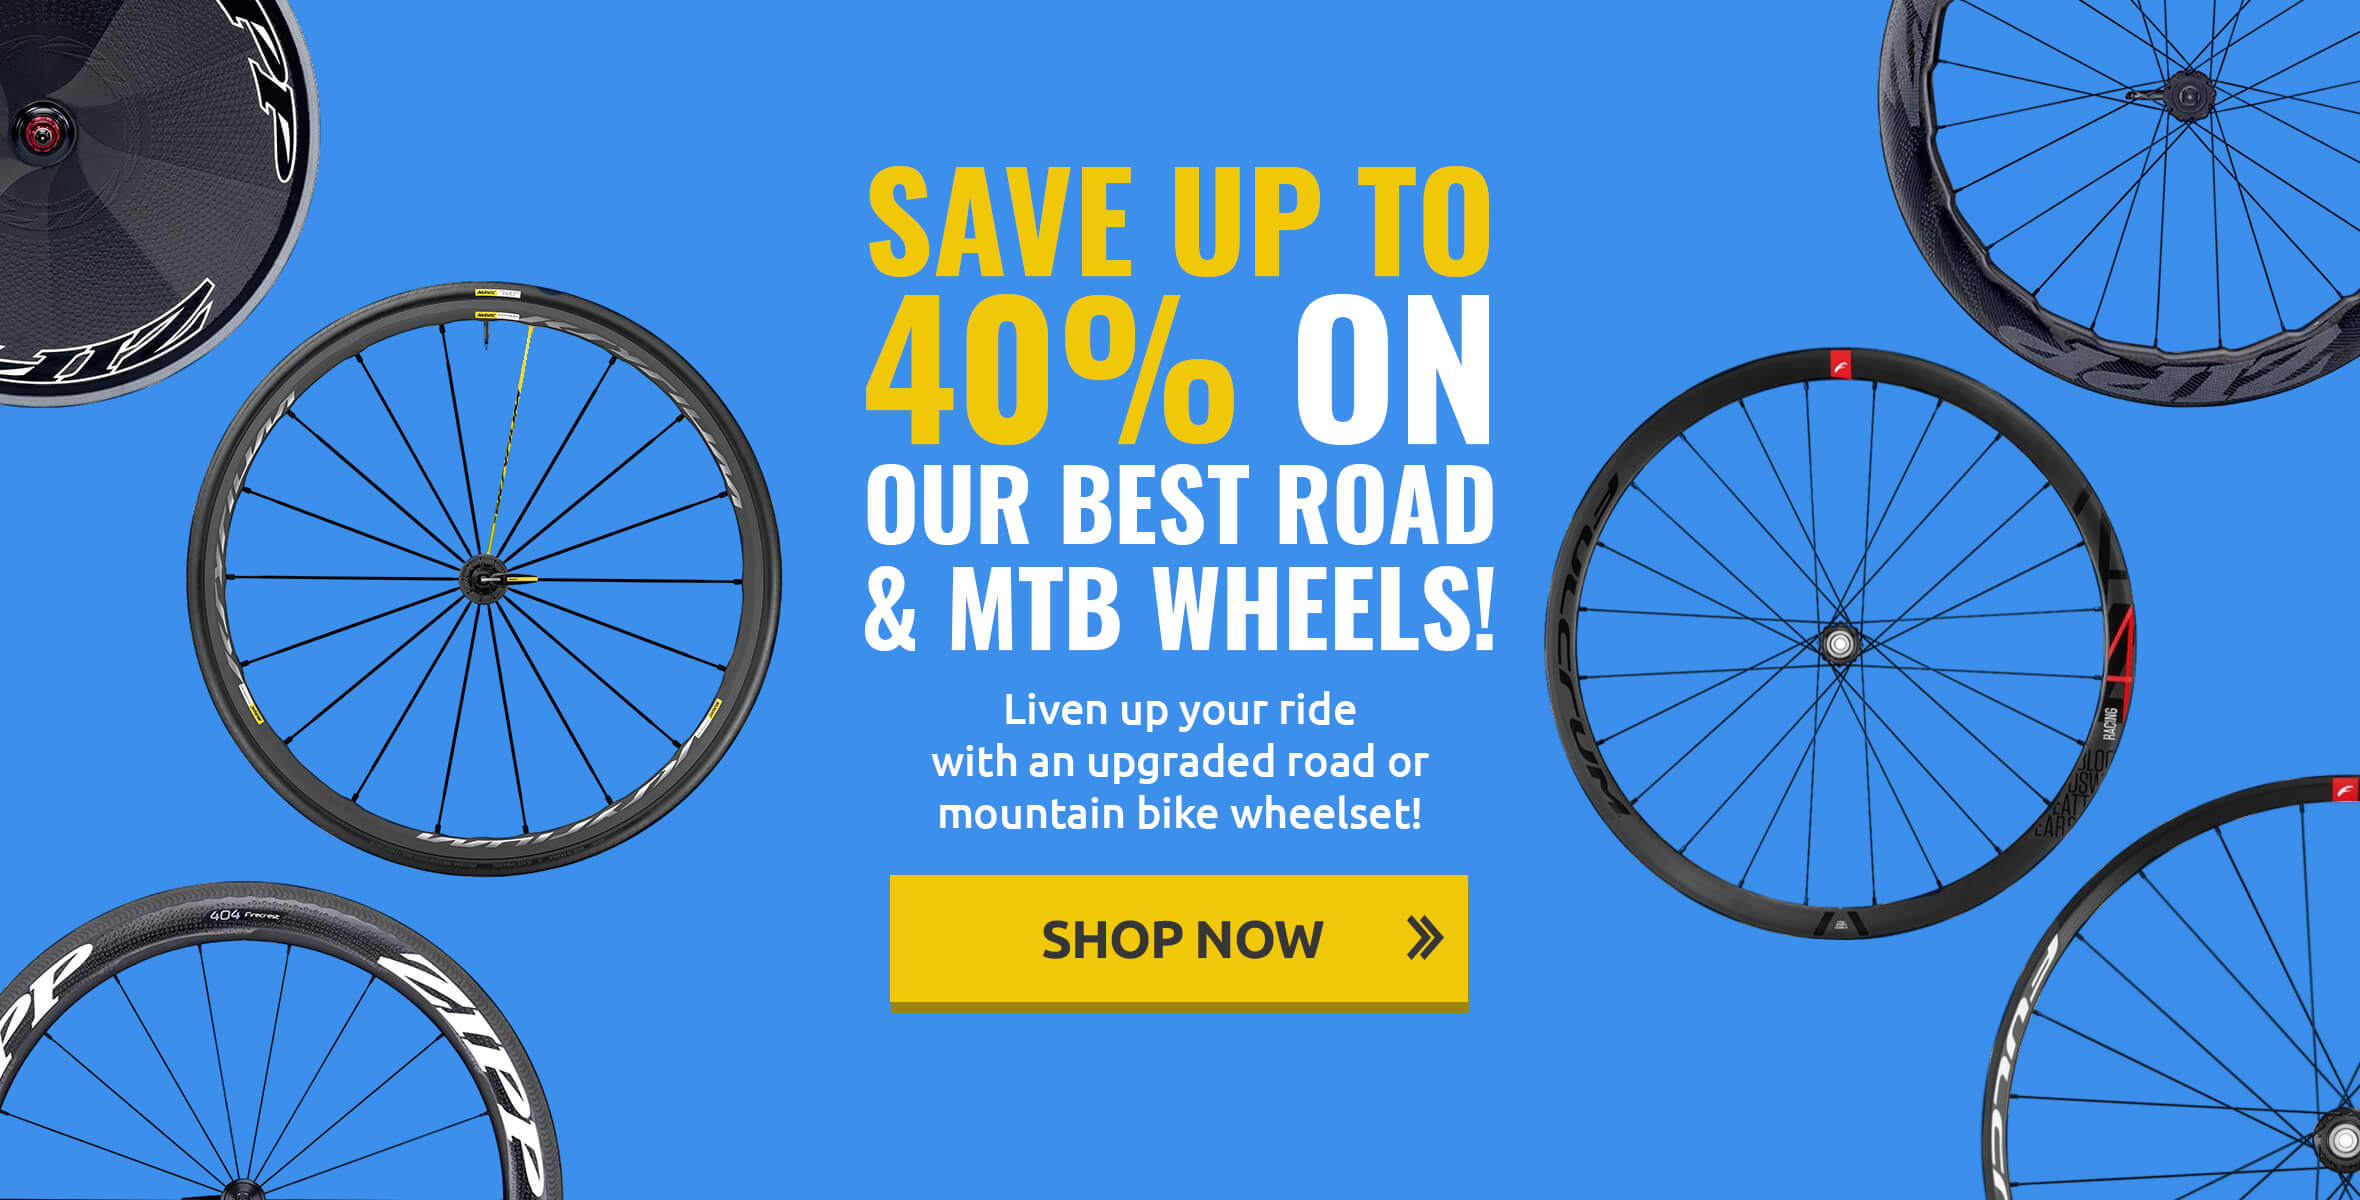 Save up to 40% on Road and MTB Wheels